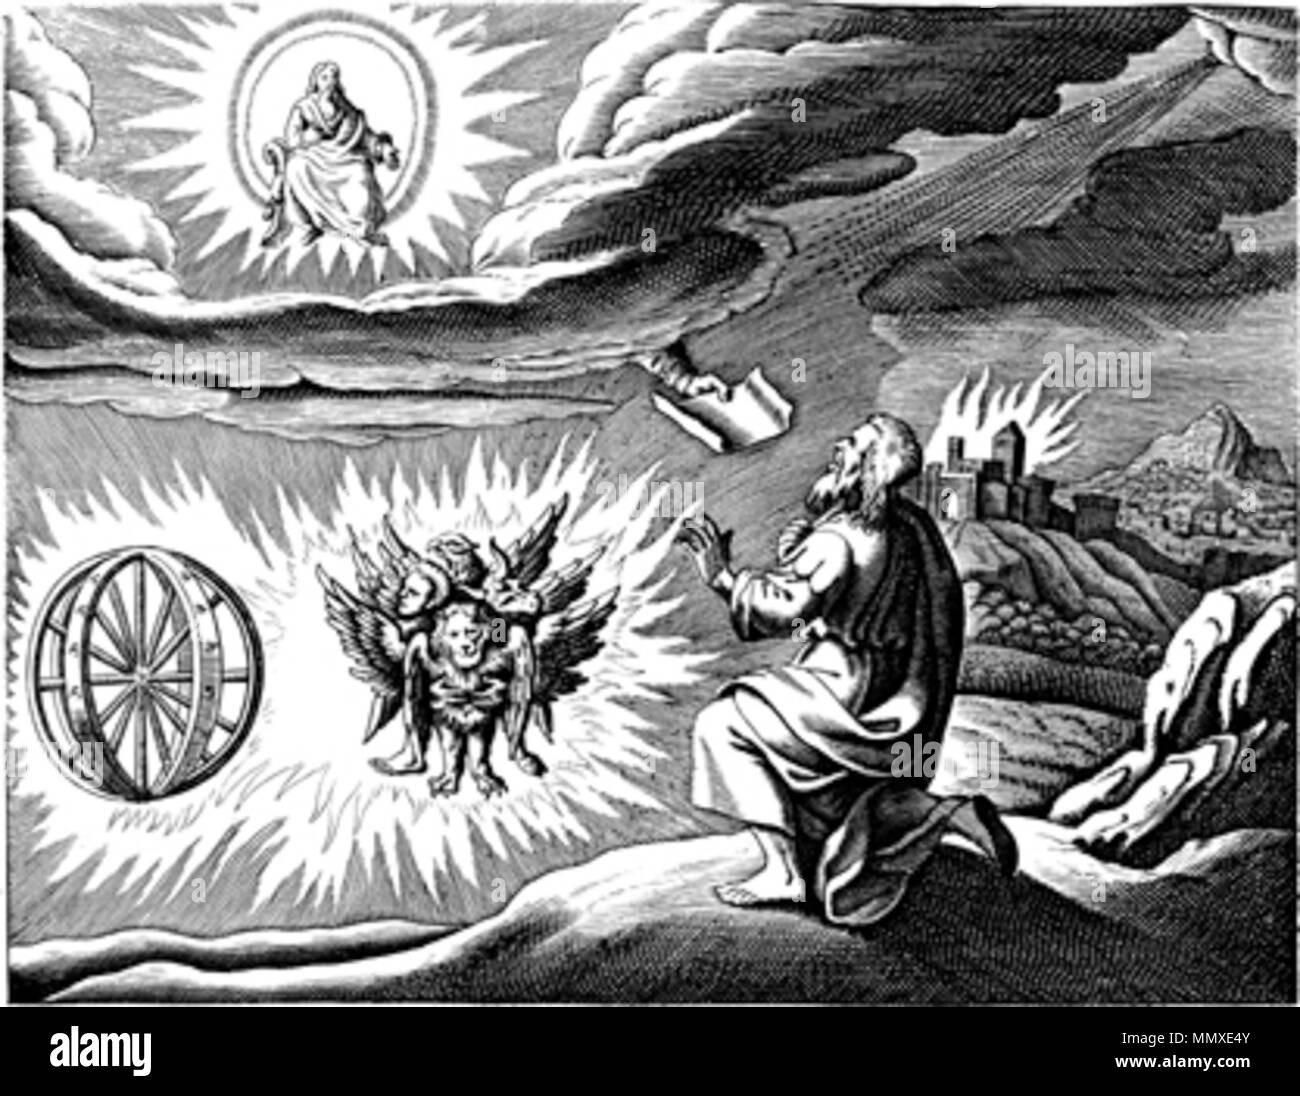 . Engraved illustration of the 'chariot vision' of the Biblical book of Ezekiel, chapter 1, after an earlier illustration by Matthaeus (Matthäus) Merian (1593-1650), for his 'Icones Biblicae' (a.k.a. 'Iconum Biblicarum').  . 1670. copy by unknown artist after illustration by Matthaeus (Matthäus) Merian the elder (1593-1650) Ezekiel's vision Stock Photo